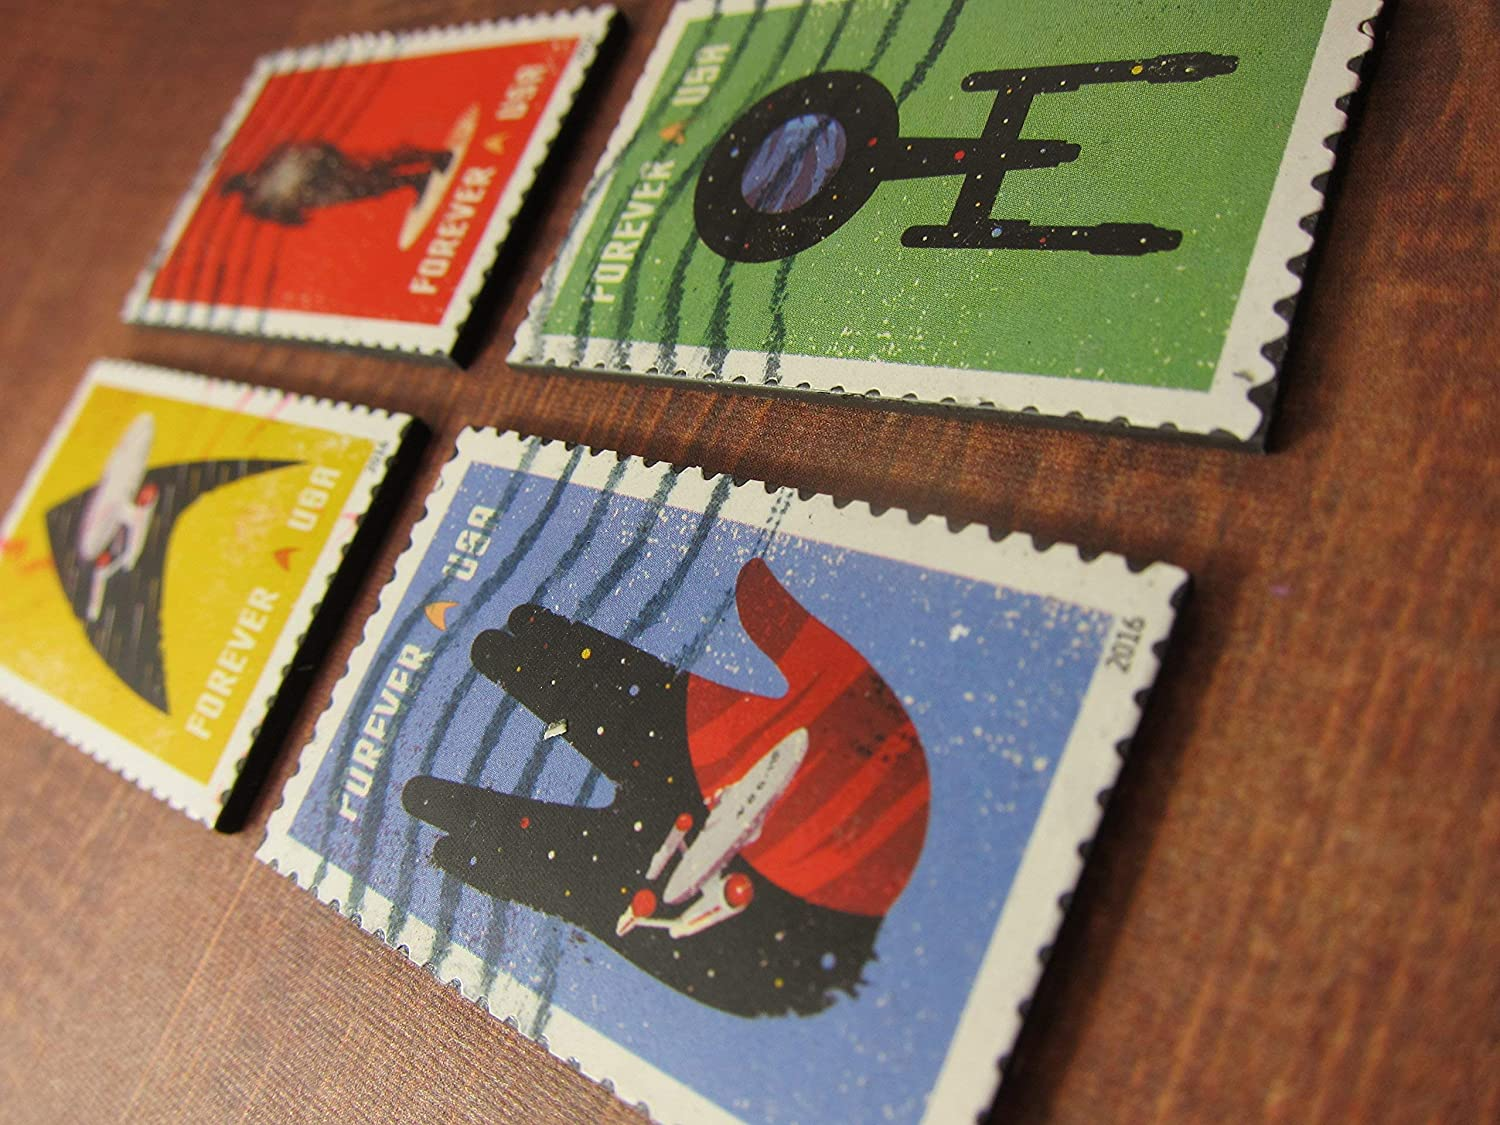 Star Trek Magnets Recycled Postage Stamps from the USA